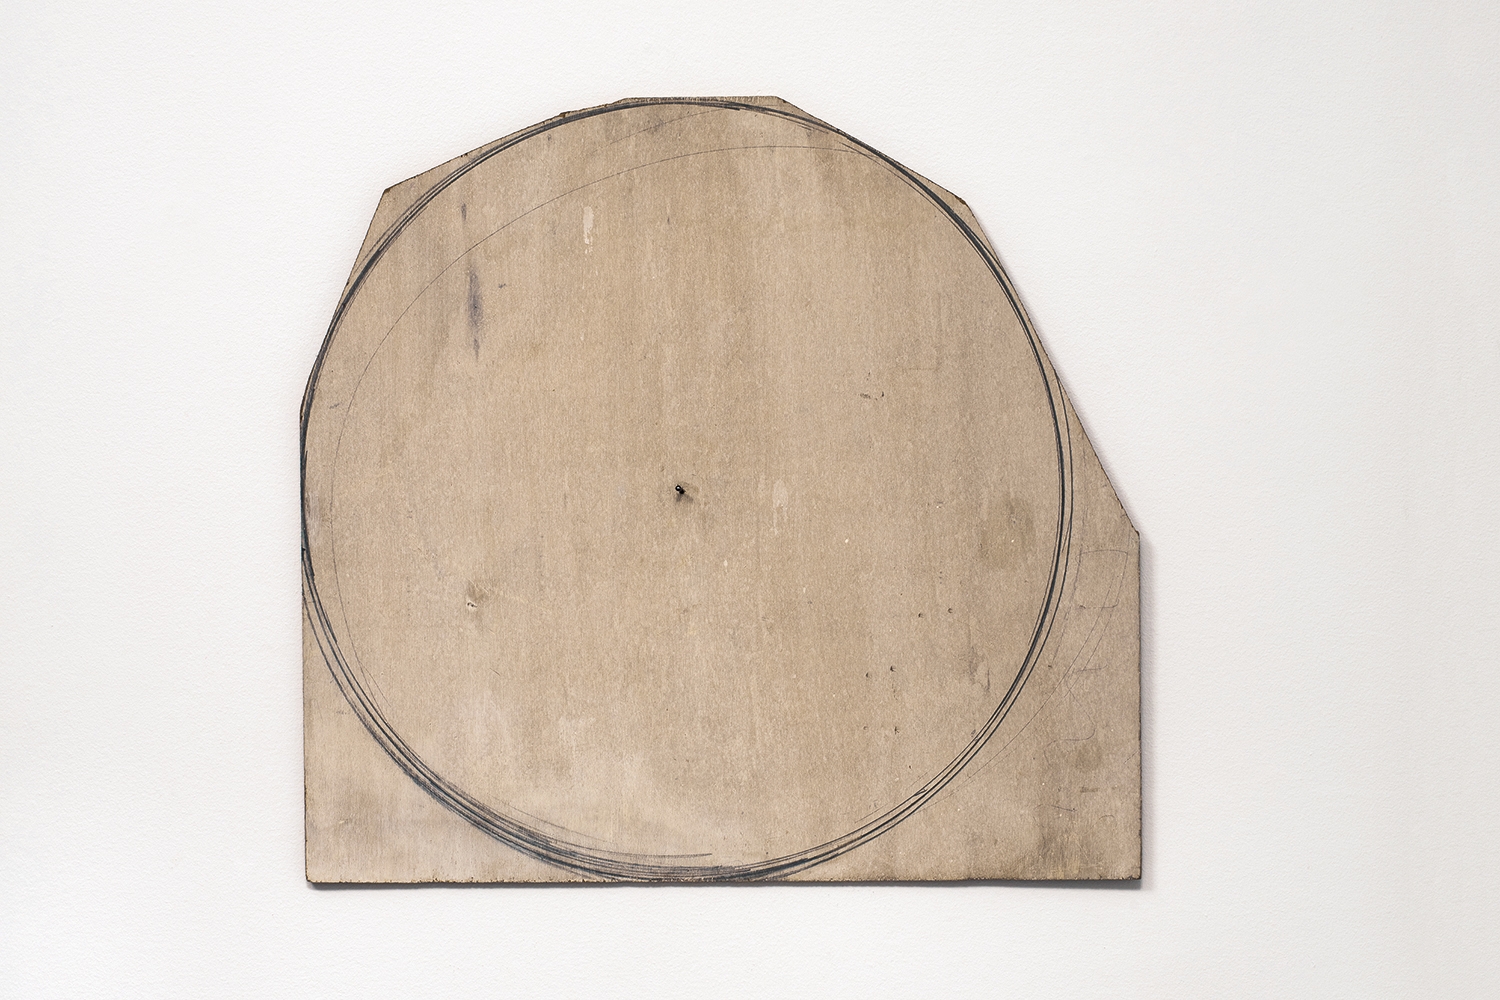 Nahum Tevet, Circle, 1974. Pencil and acrylic-based house paint on plywood, 23 1/4 x 21 7/16 in (58 x 54.5 cm). Collection of the artist. Photo by Polite Photographic, courtesy of the Hunter College Art Galleries and the artist.